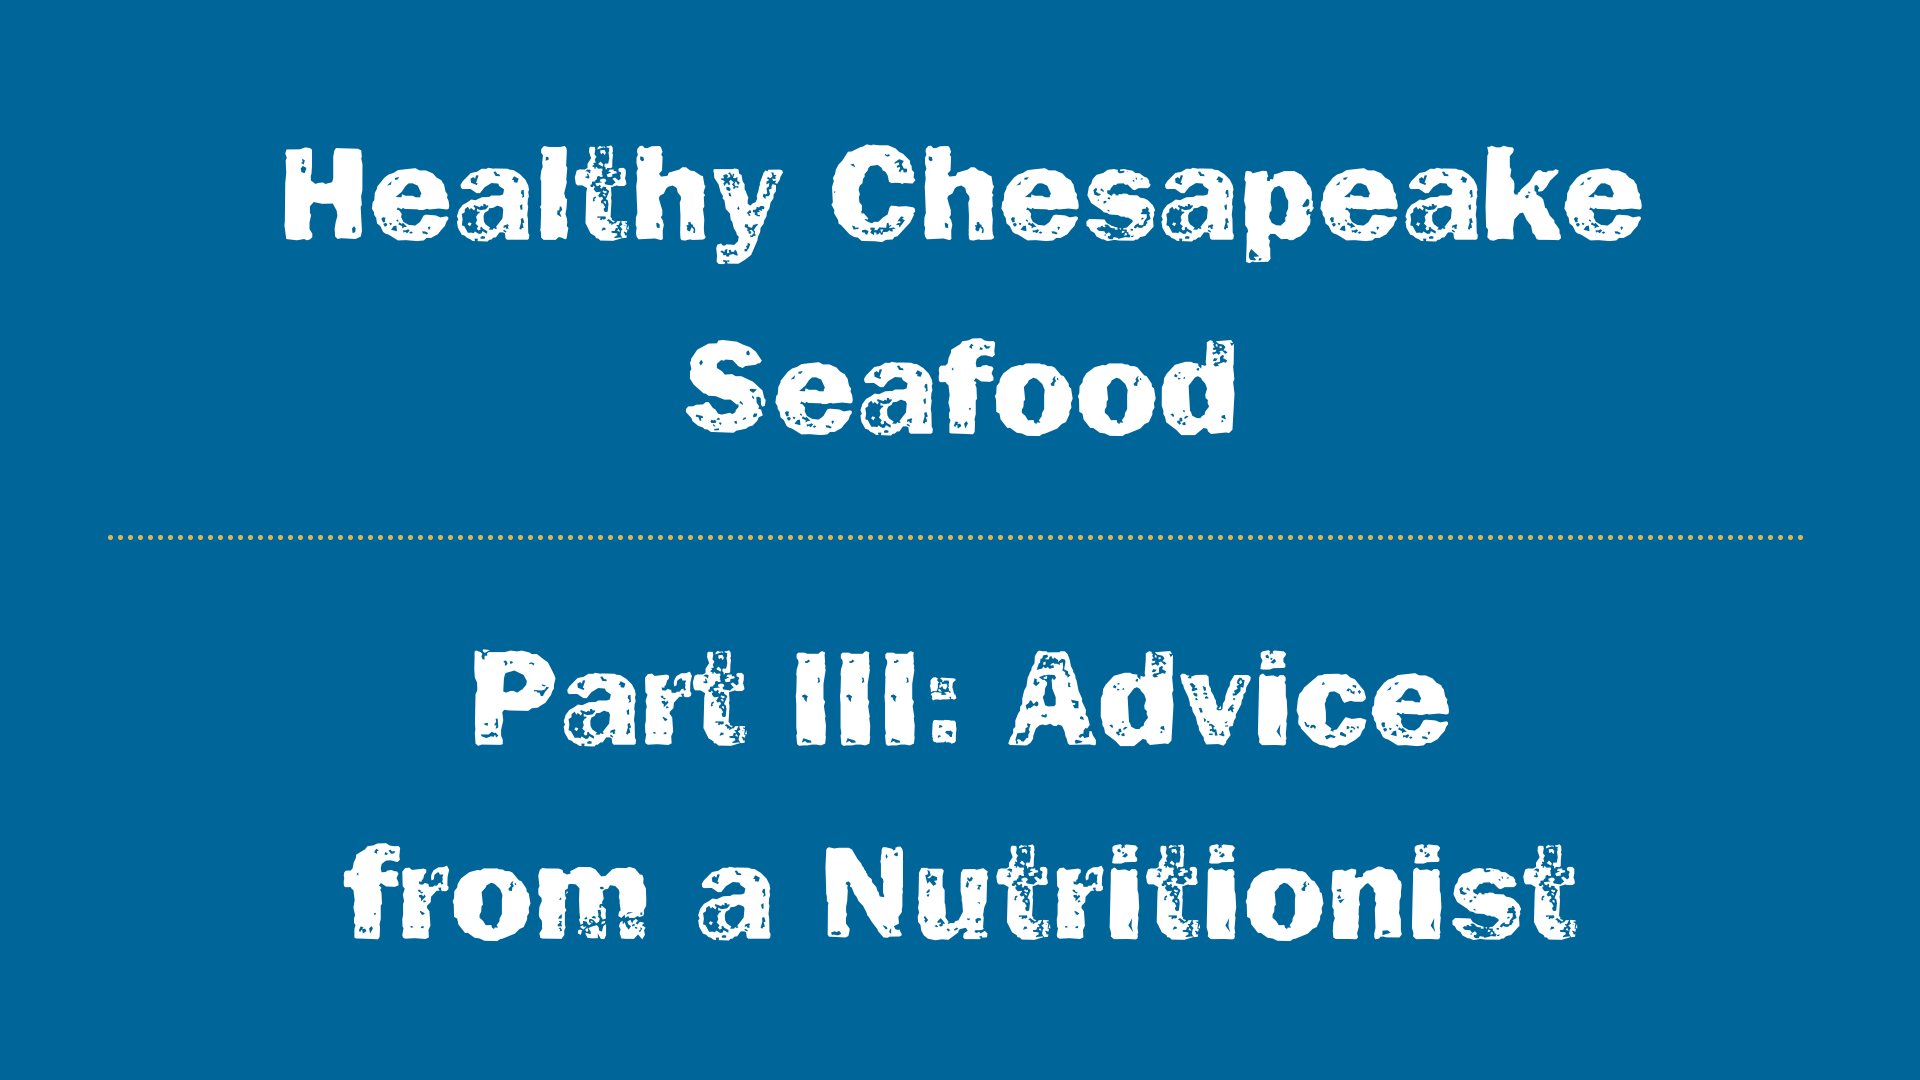 Healthy Chesapeake Seafood Series Part 3: Advice from a Nutritionist